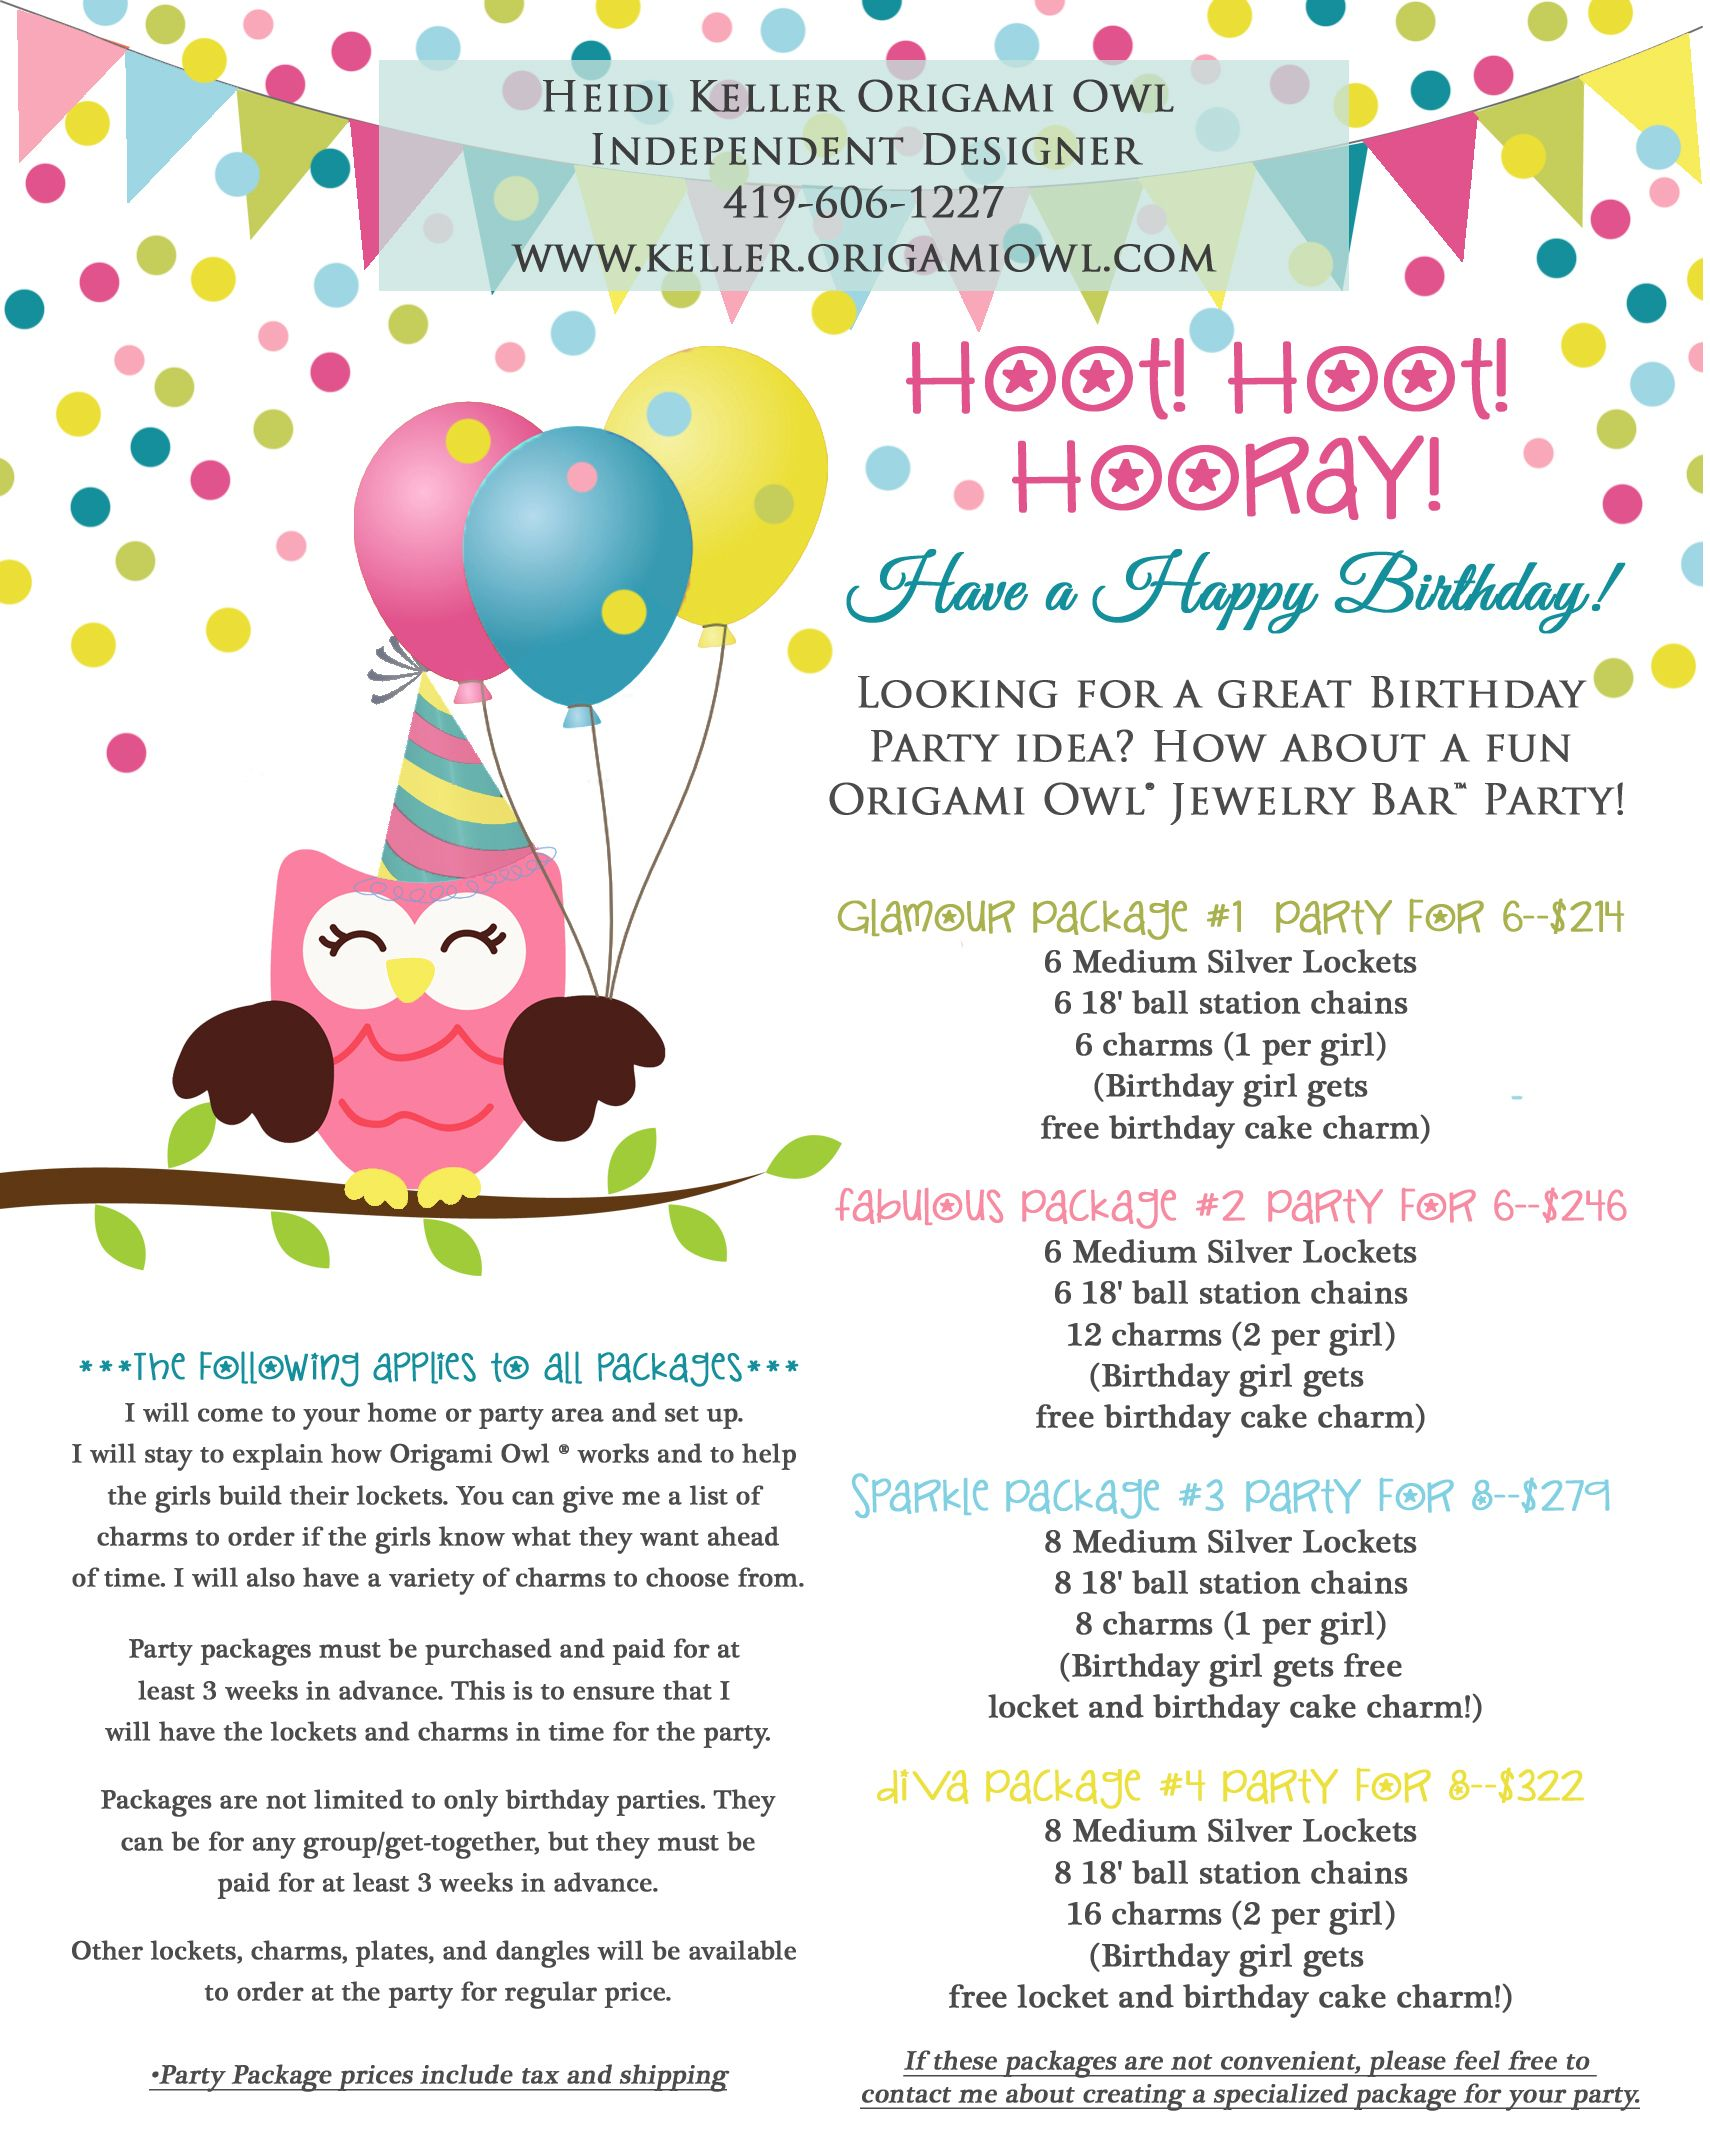 Origami Owl Jewelry Bar Birthday Party Packages Diva for a day ...